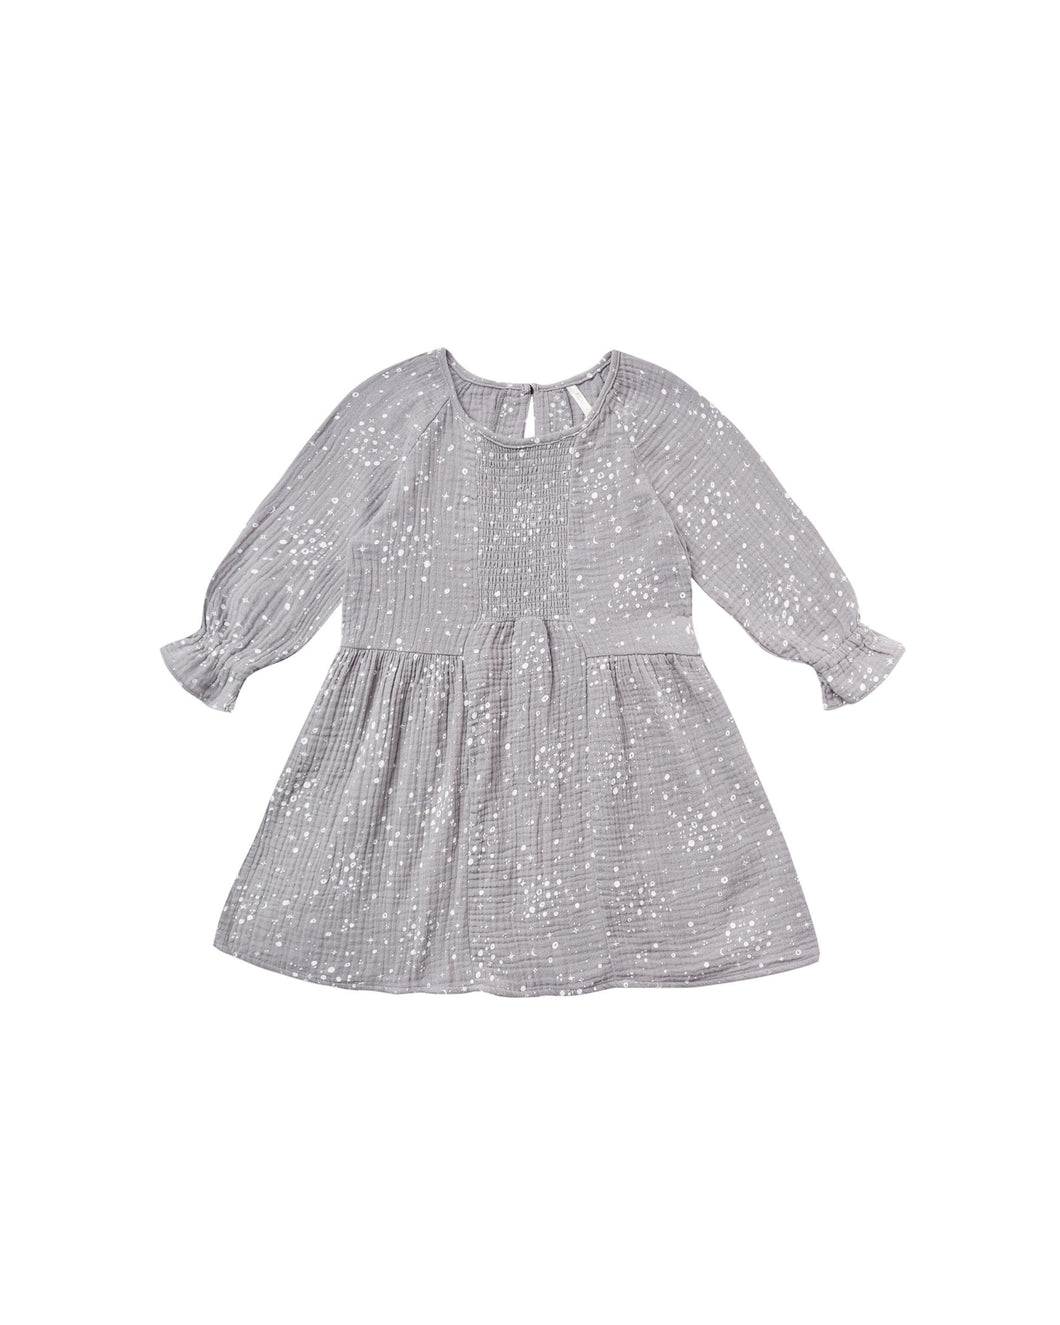 Rylee & Cru Moondust Sadie Dress